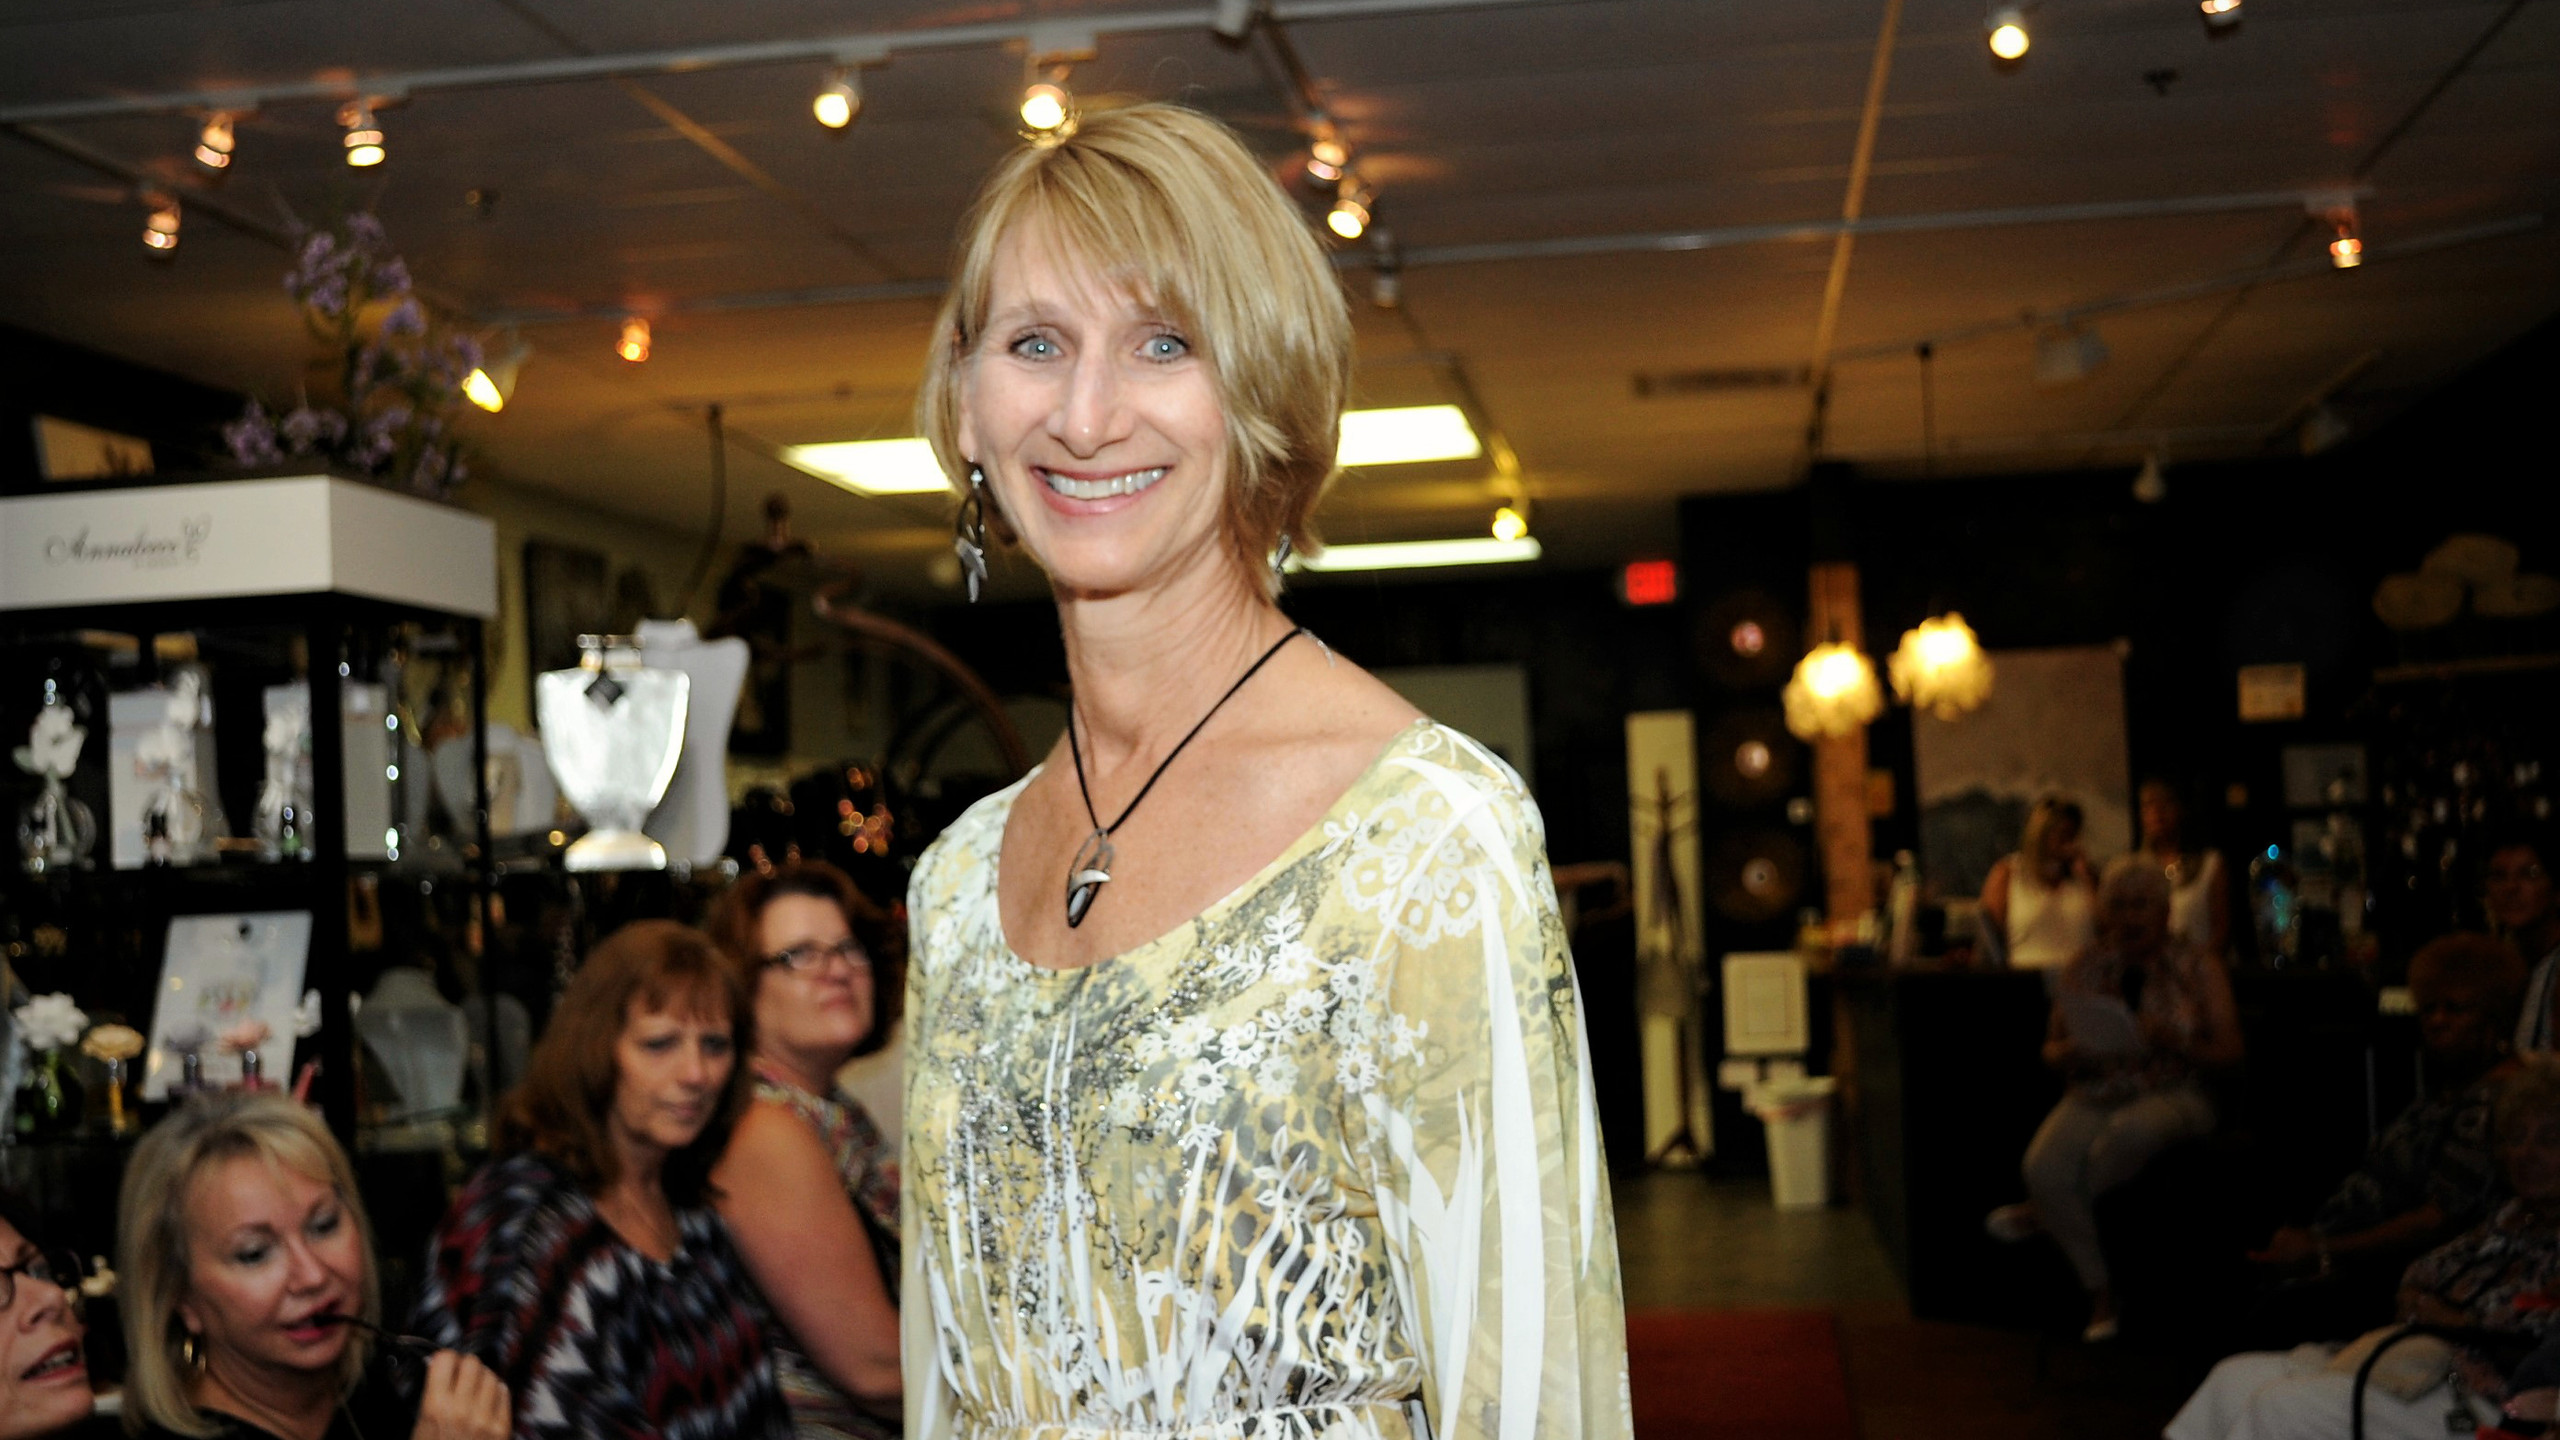 Palm Coast Fashion Event at Chez Jacqueline Gift Shop hosted by The Sheltering Tree of Bunnell, FL